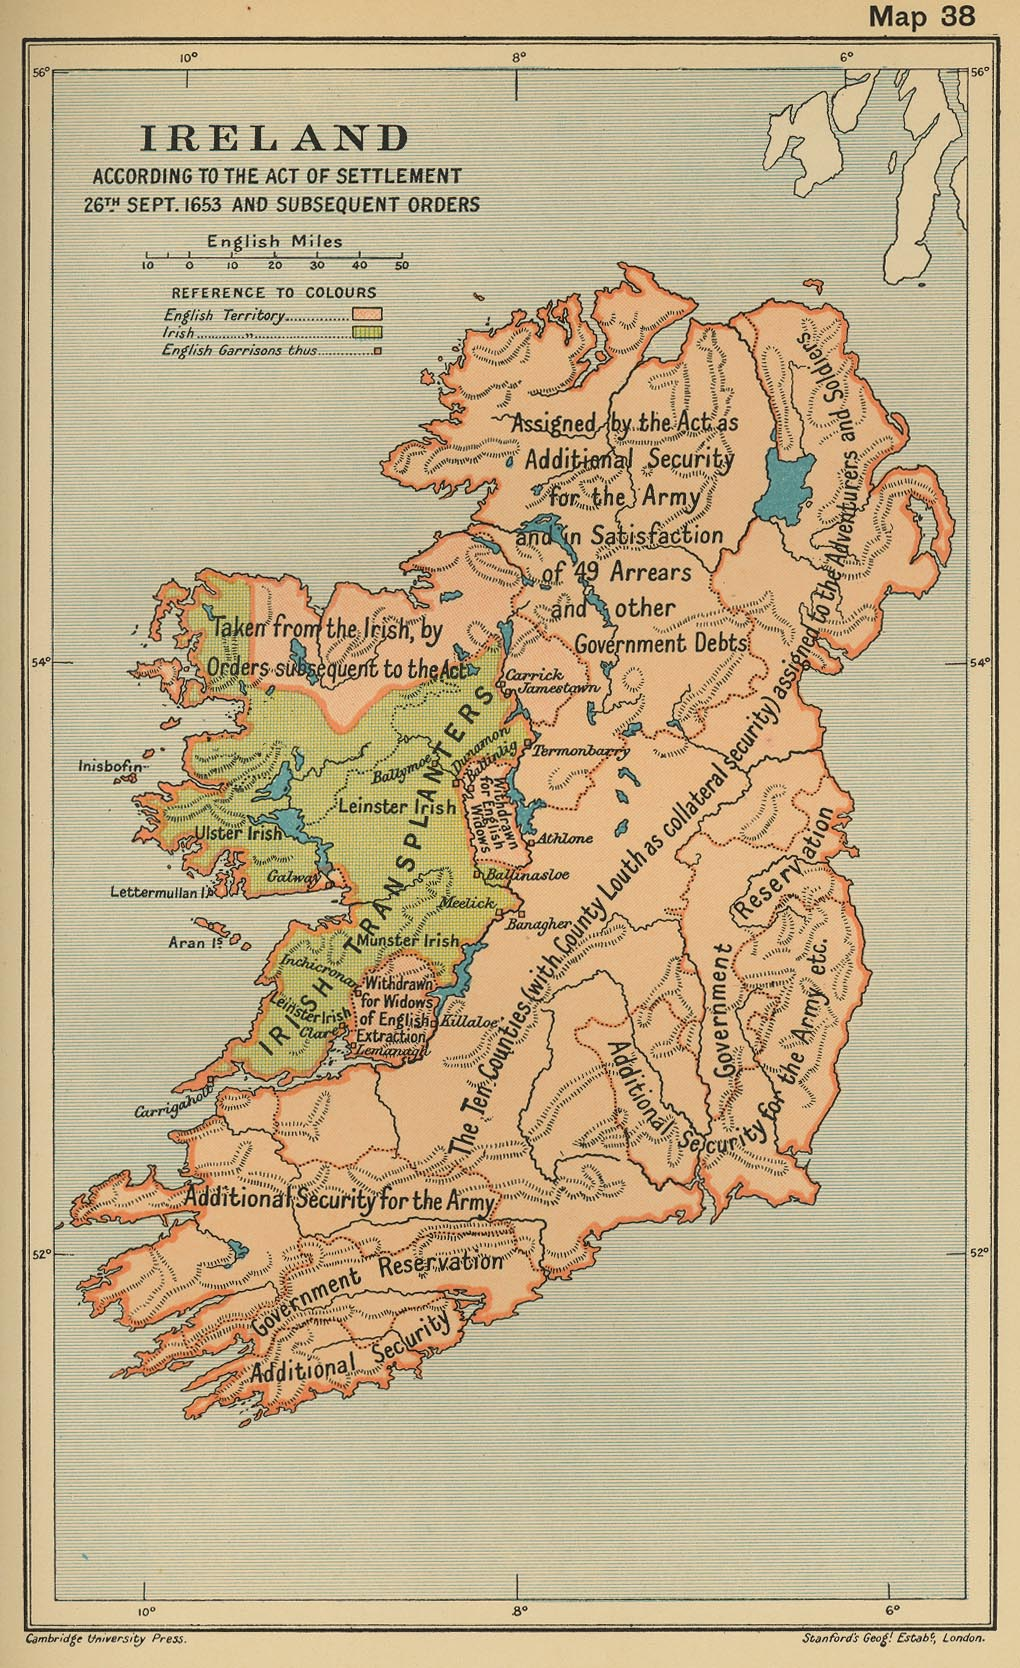 Map of Ireland According to the Act of Settlement September 26, 1653 and Subsequent Orders